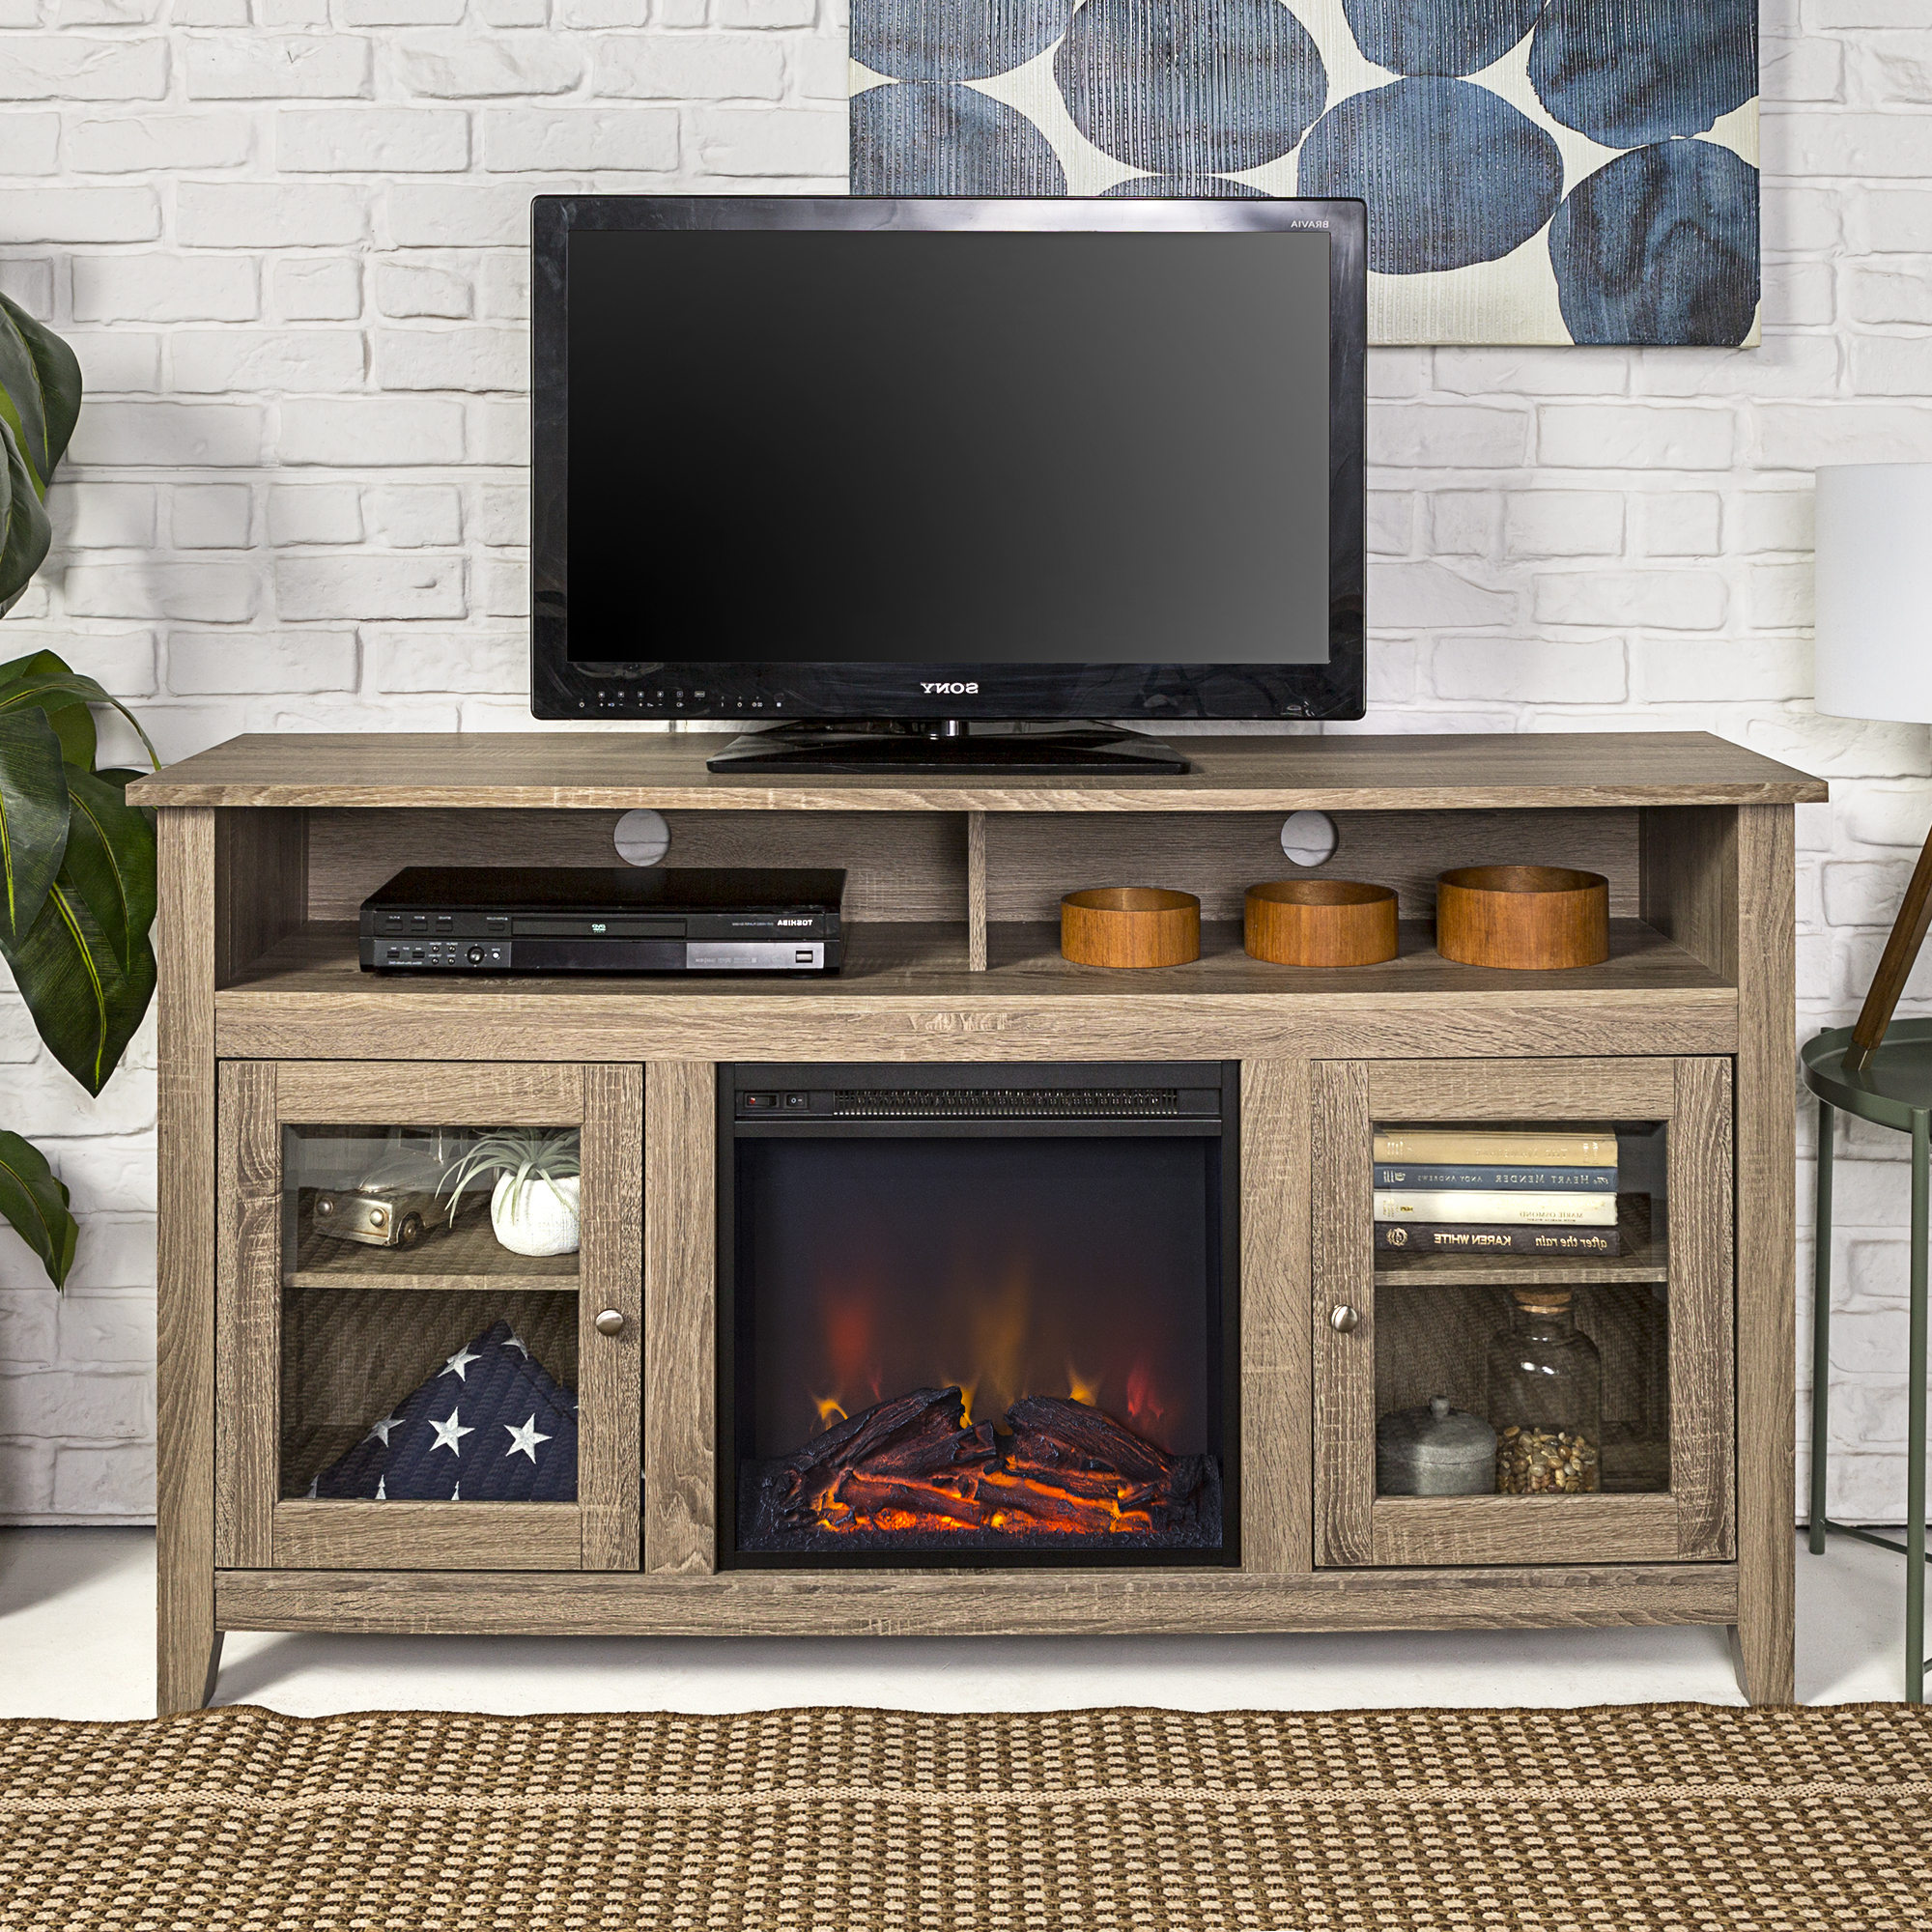 Walker Edison Tall Fireplace Tv Stand For Tvs Up To 64 Inside Walker Edison Contemporary Tall Tv Stands (View 15 of 20)